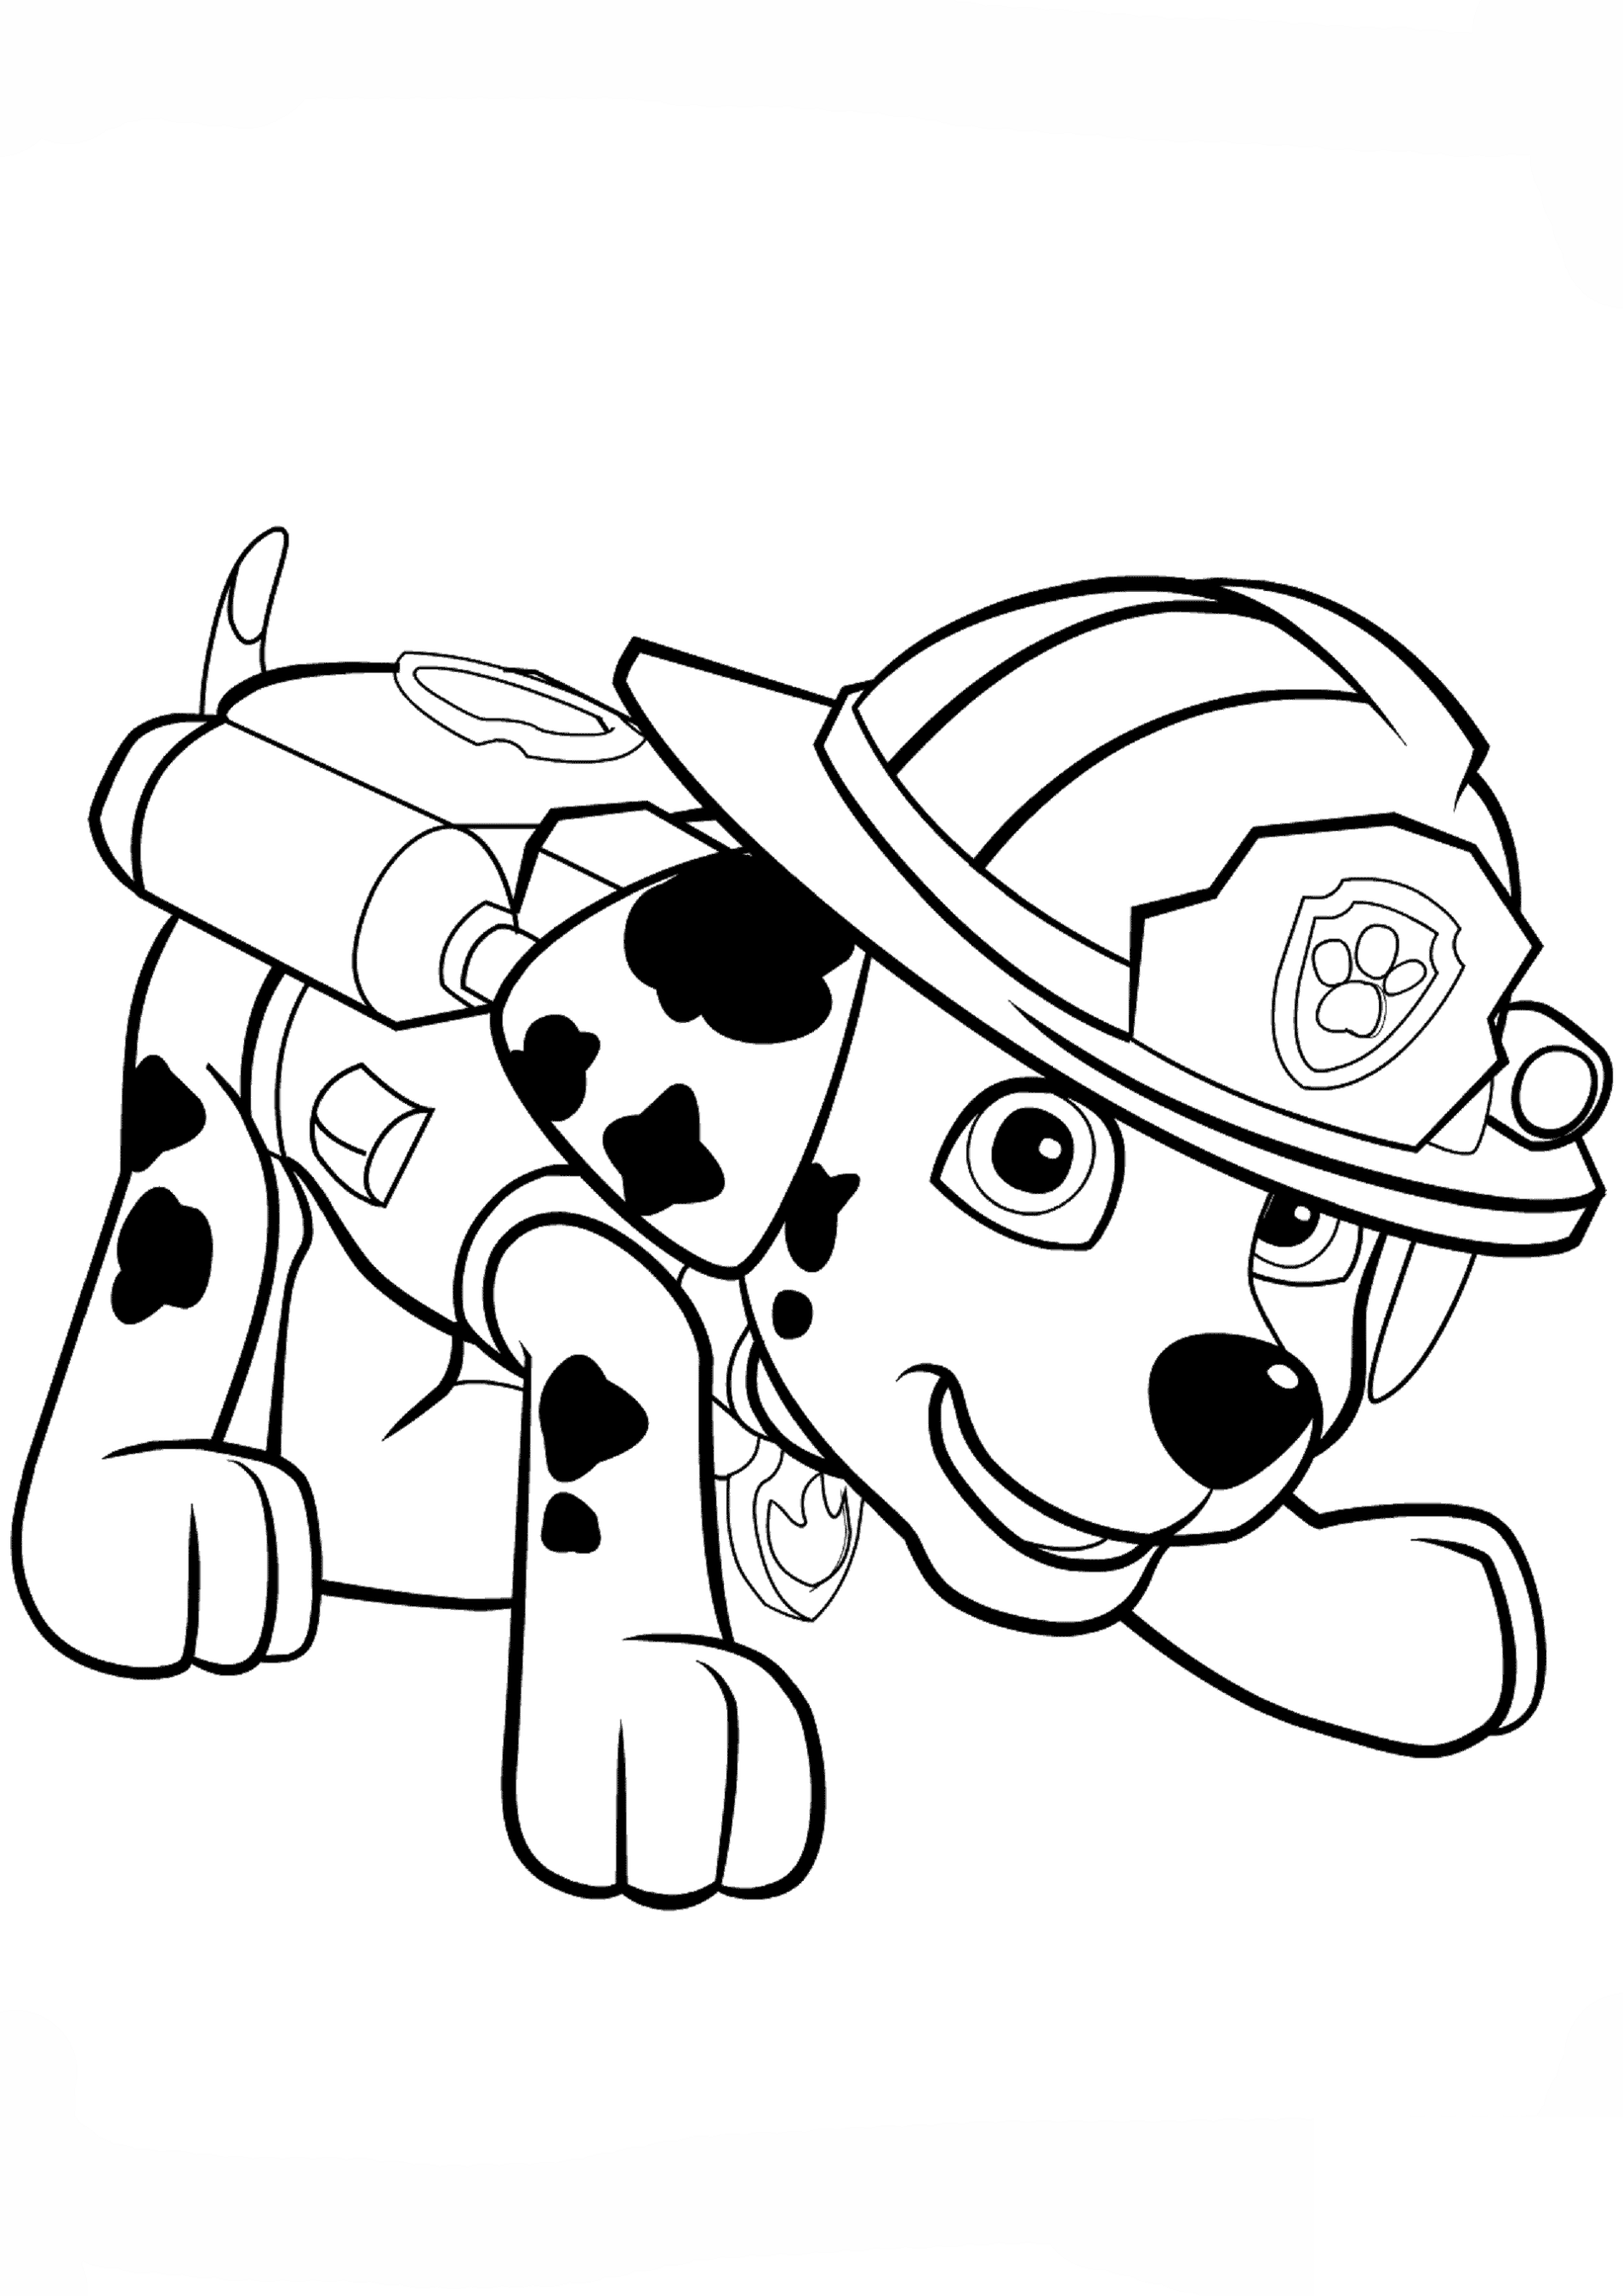 Paw Patrol Coloring Pages for Boys | Educative Printable